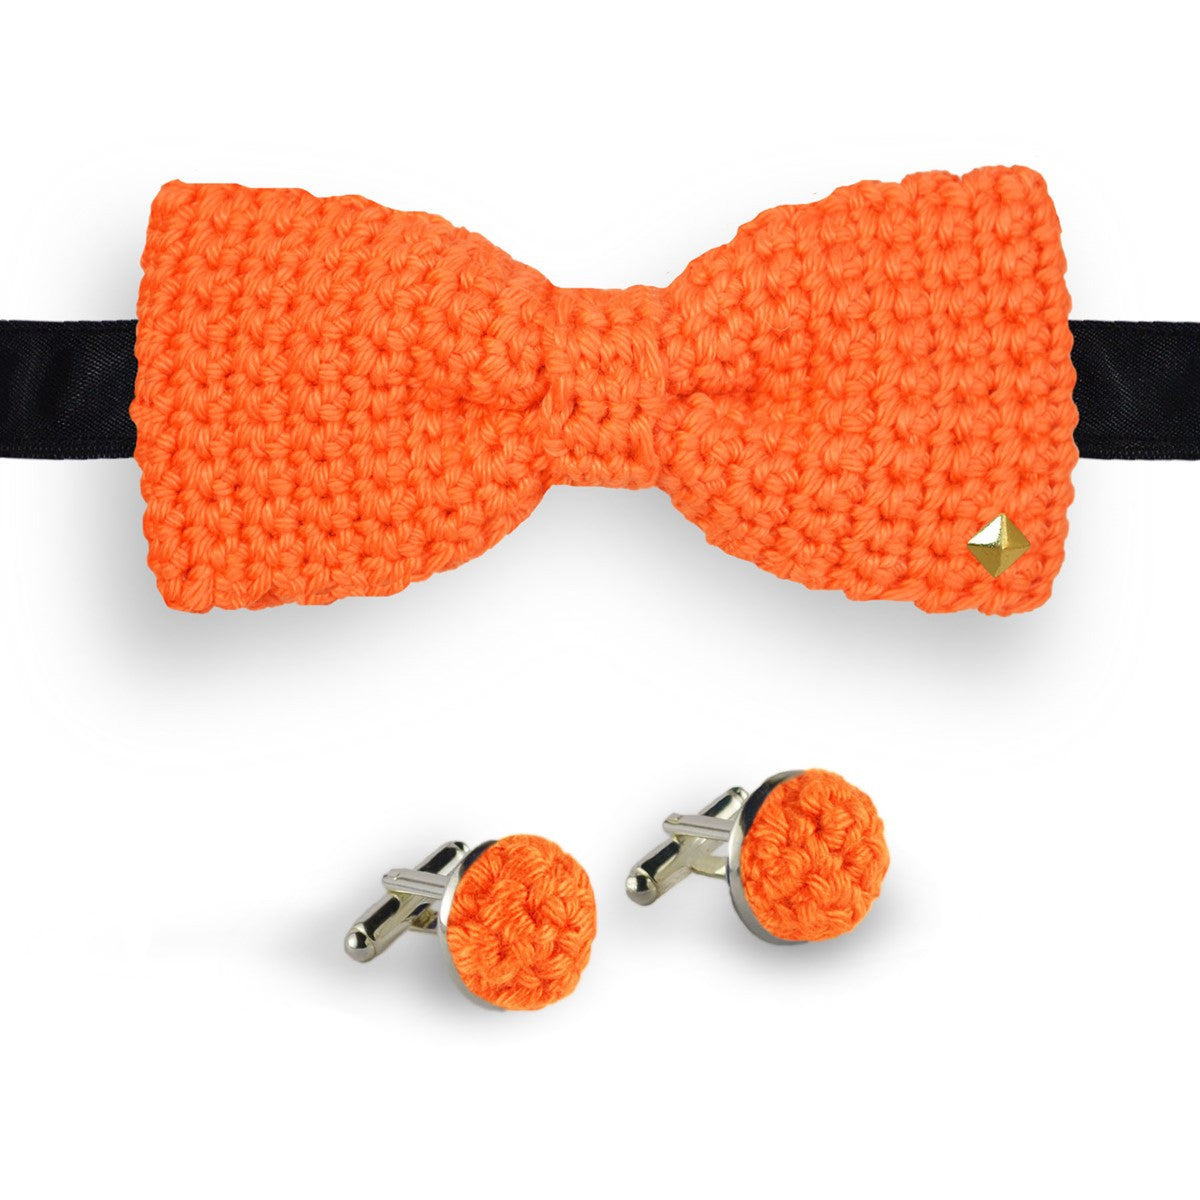 Coffret noeud papillon boutons de manchette au crochet Truffe orange